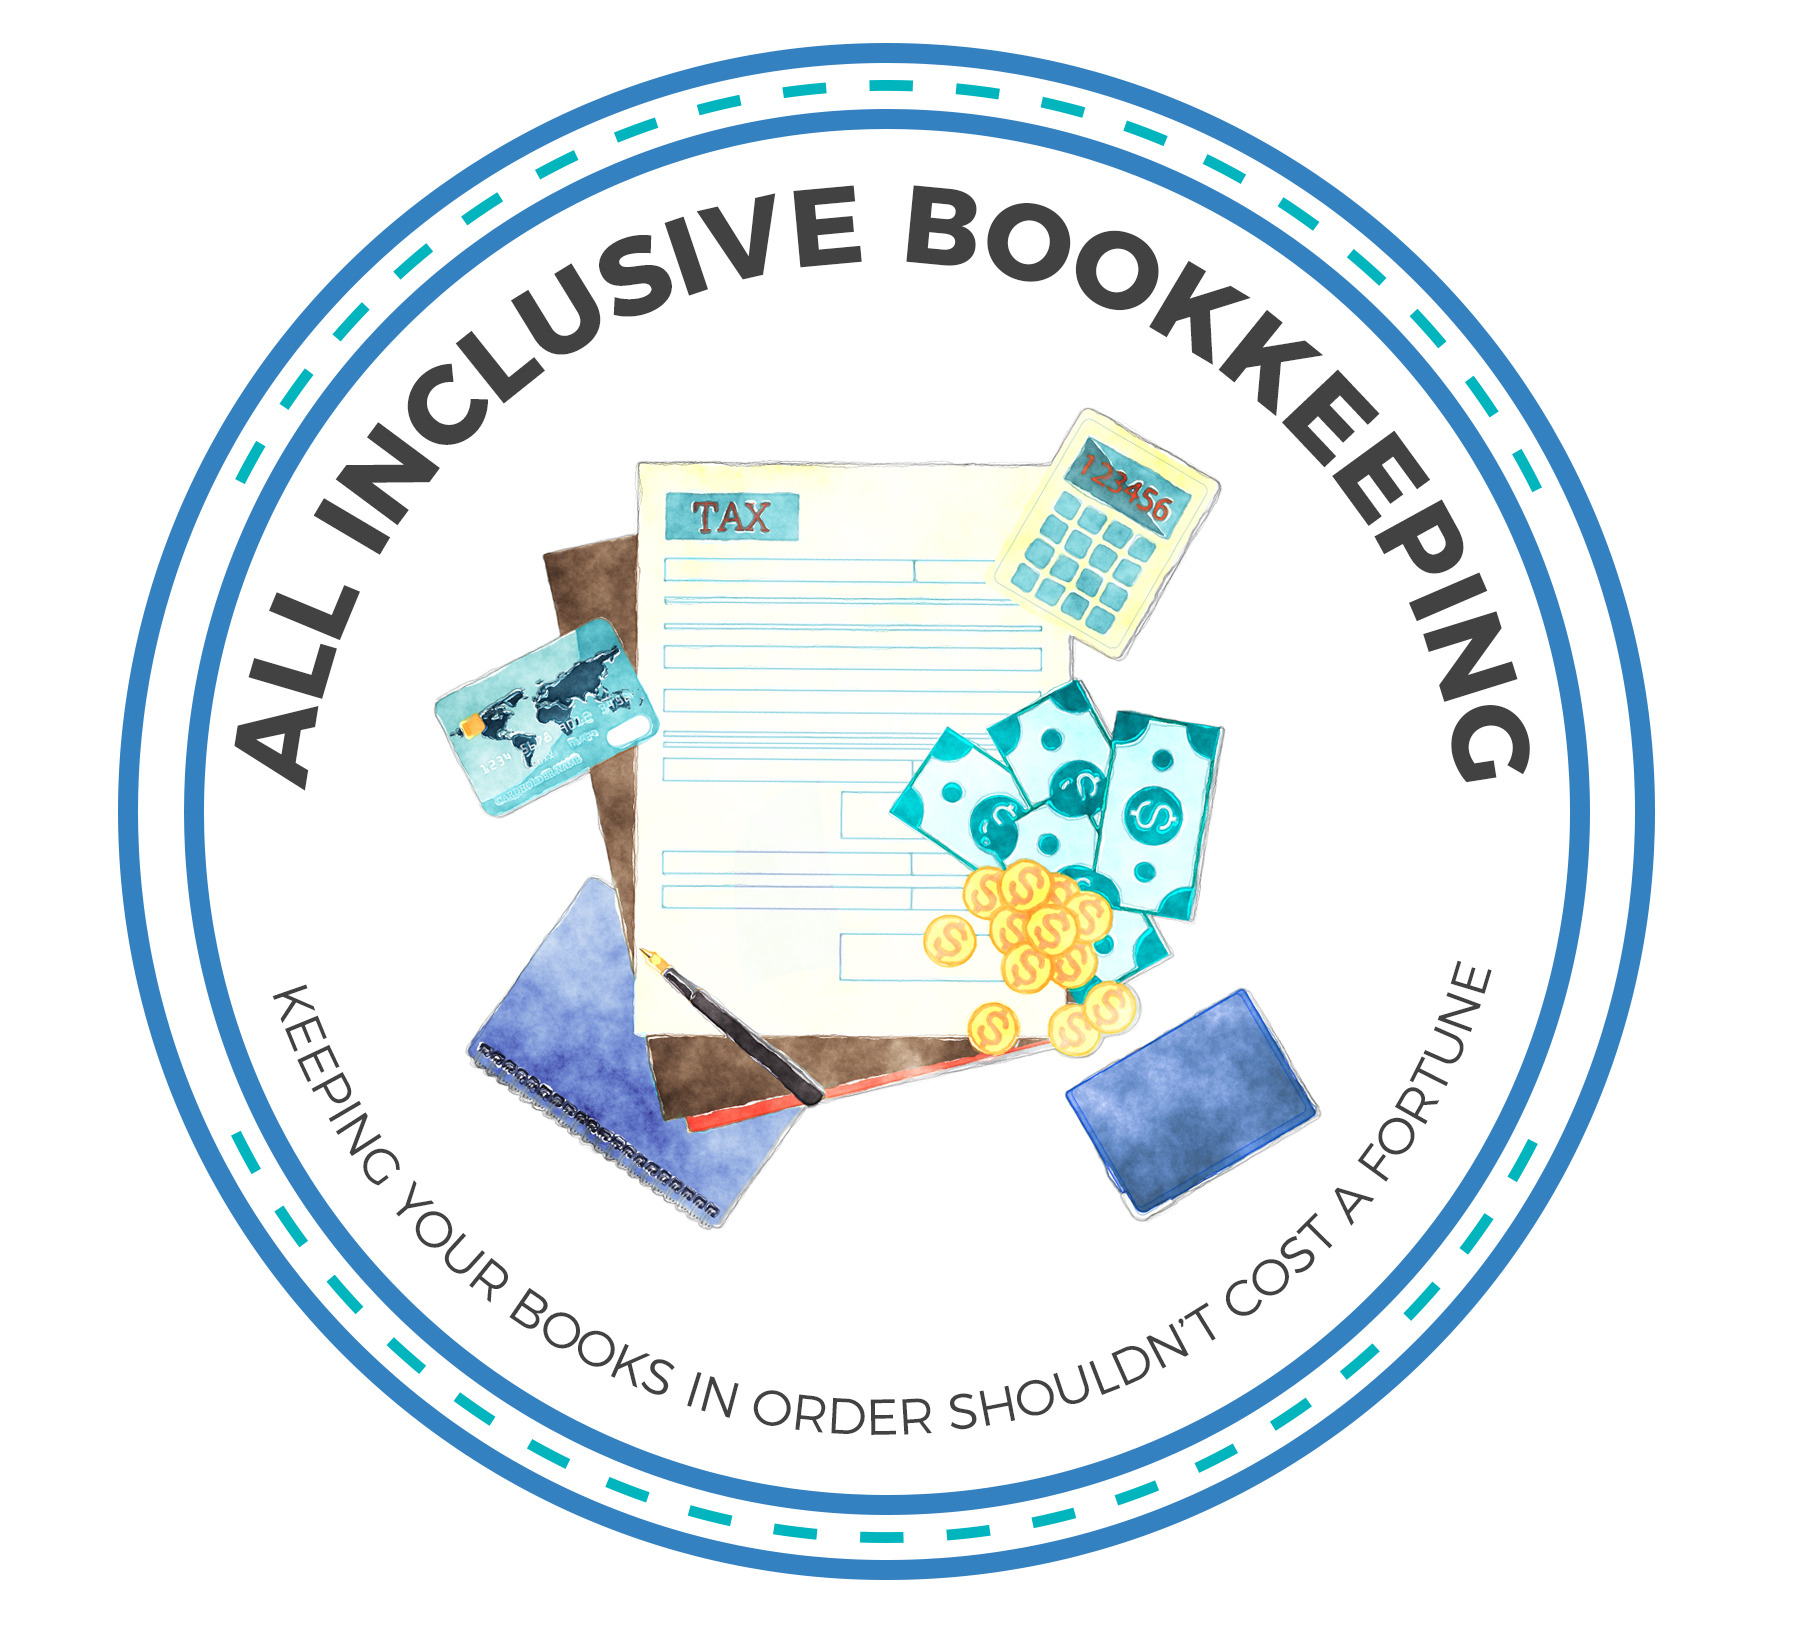 ALl-Inclusive Bookkeeping